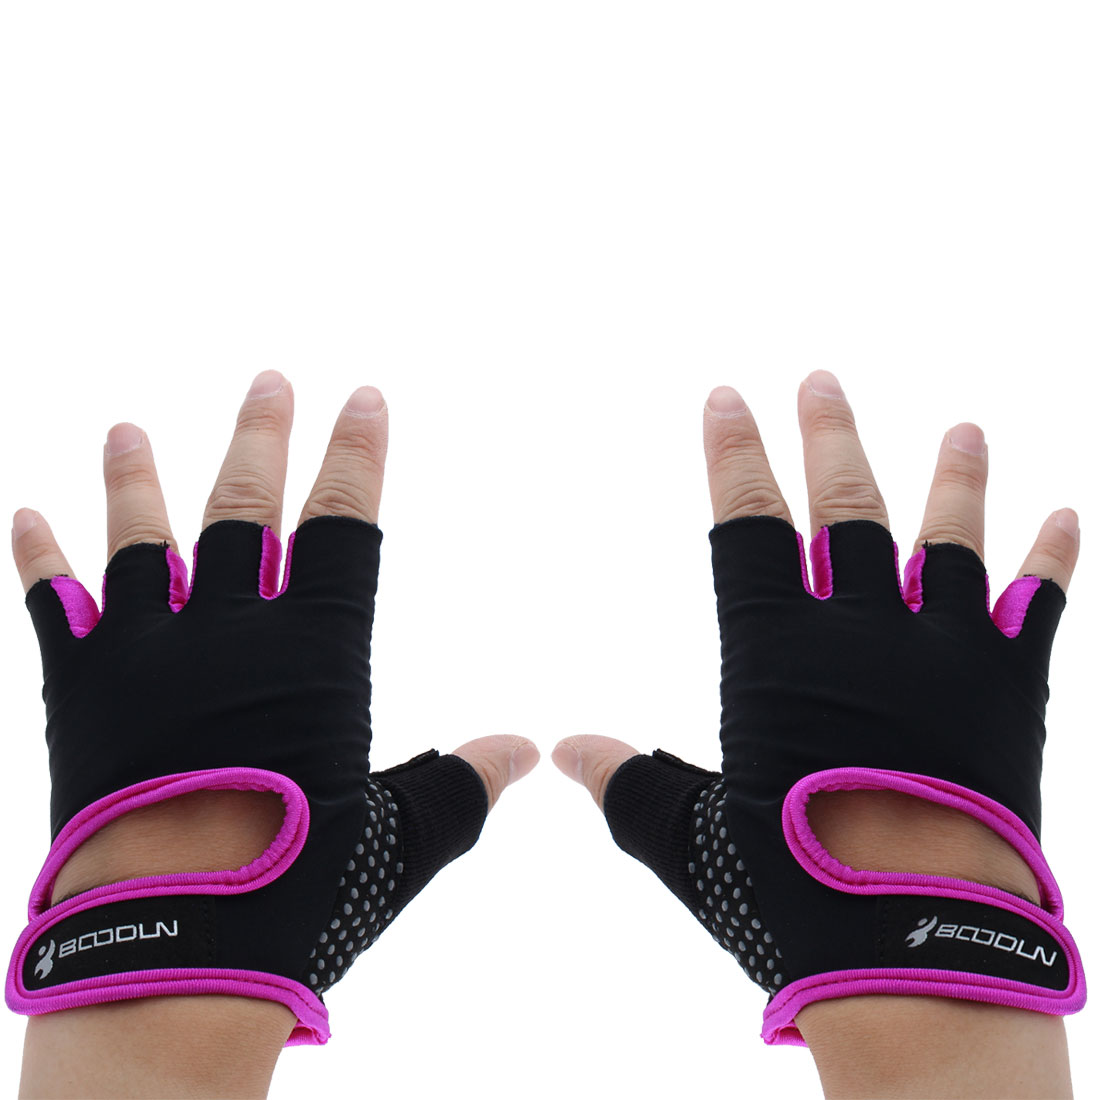 BOODUN Authorized Exercise Weight Biking Lifting Training Microfiber Non-slip Fitness Half Finger Gloves Purple S